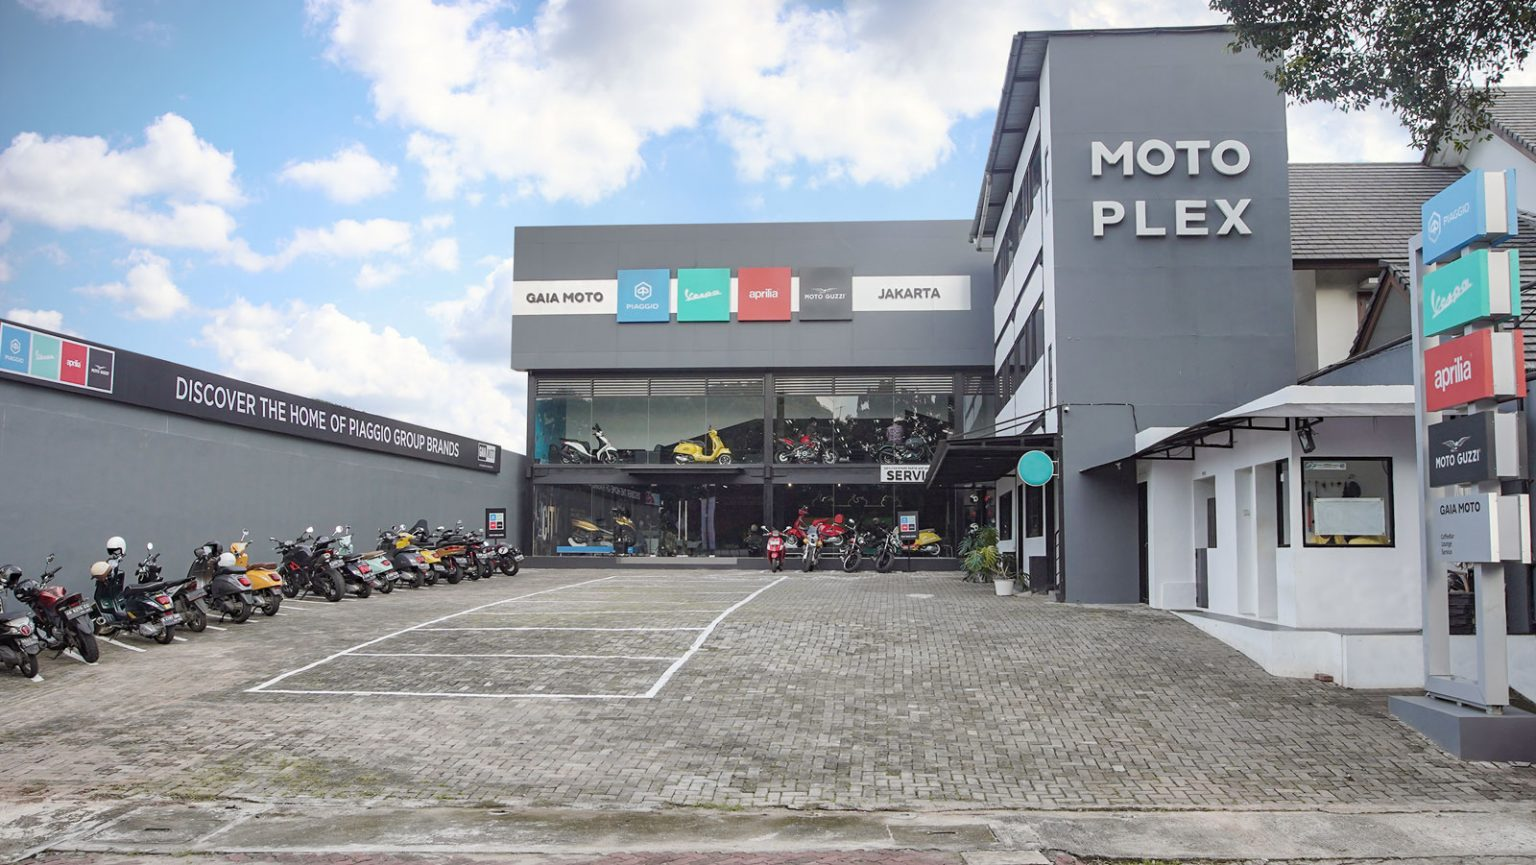 The Next Level Of Motoplex Premiumization Is Started With The Opening Of Motoplex Jakarta, The Home Of Piaggio Group Brands